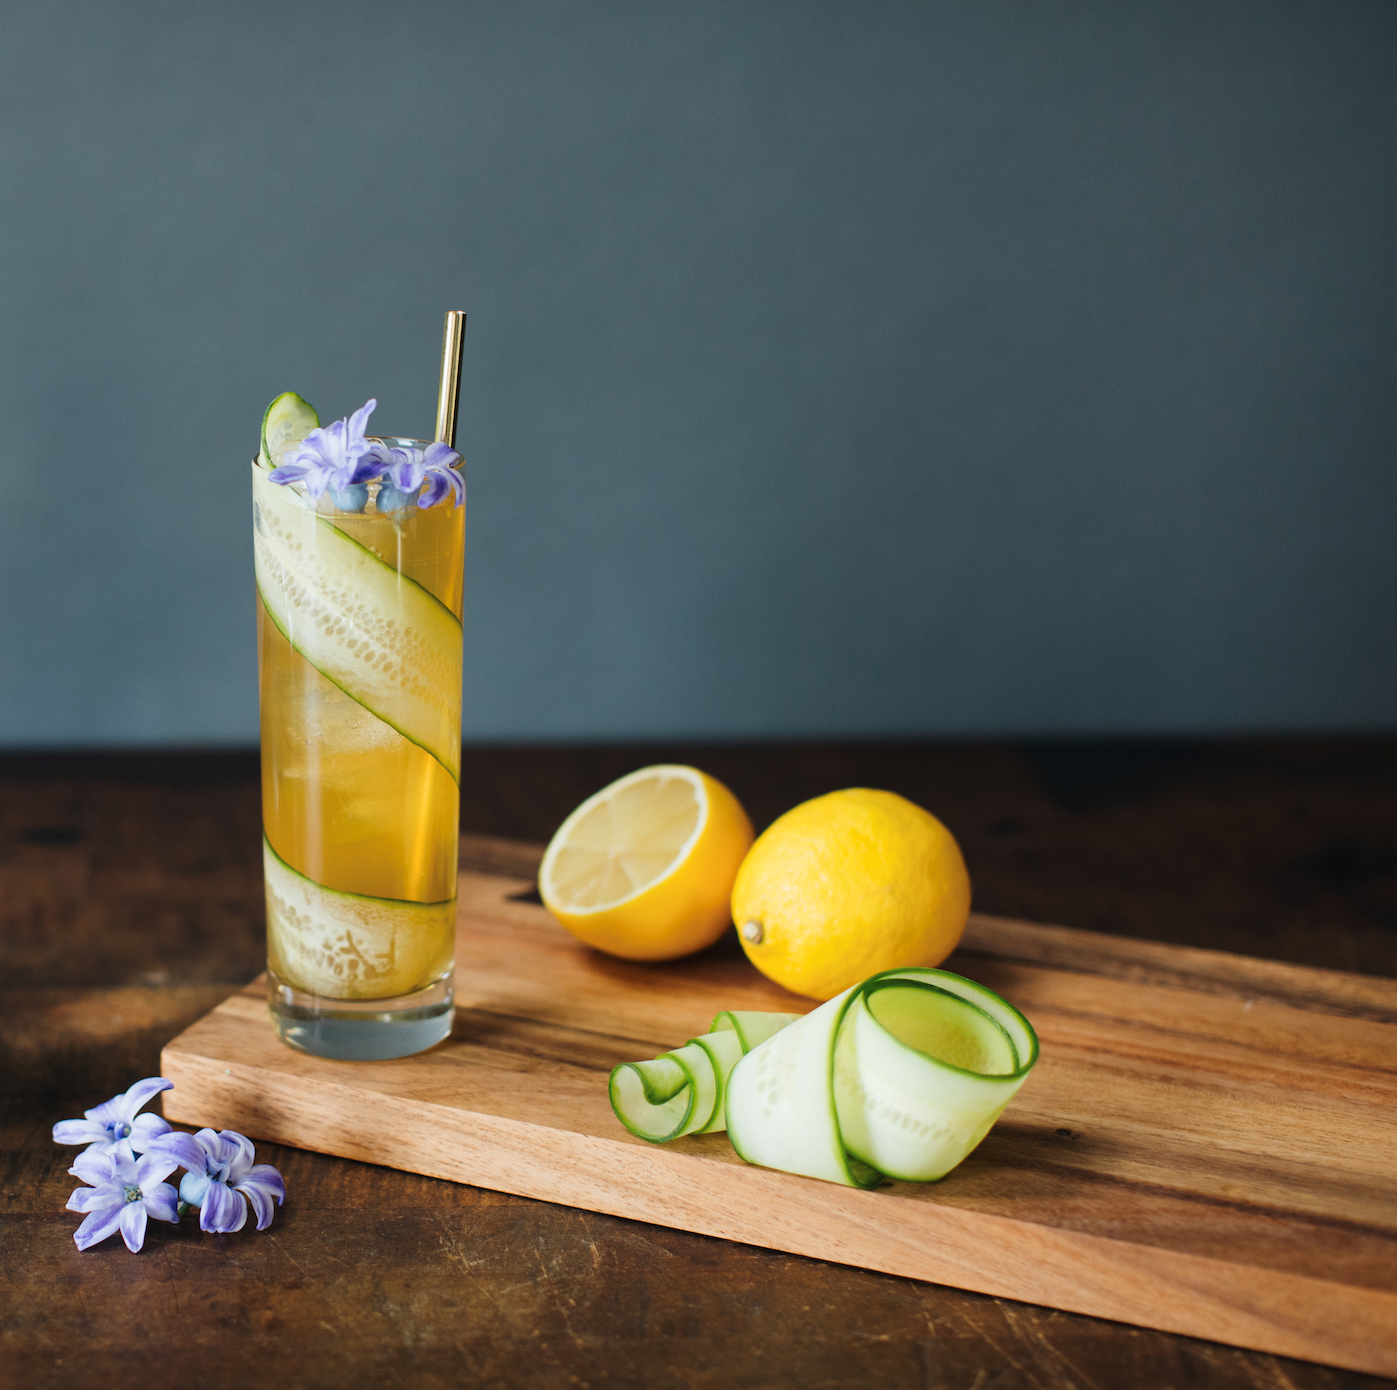 Governors-Ball-Cocktail-Recipes-Check-Out-These-Don-Julio-Tequila-Drinks